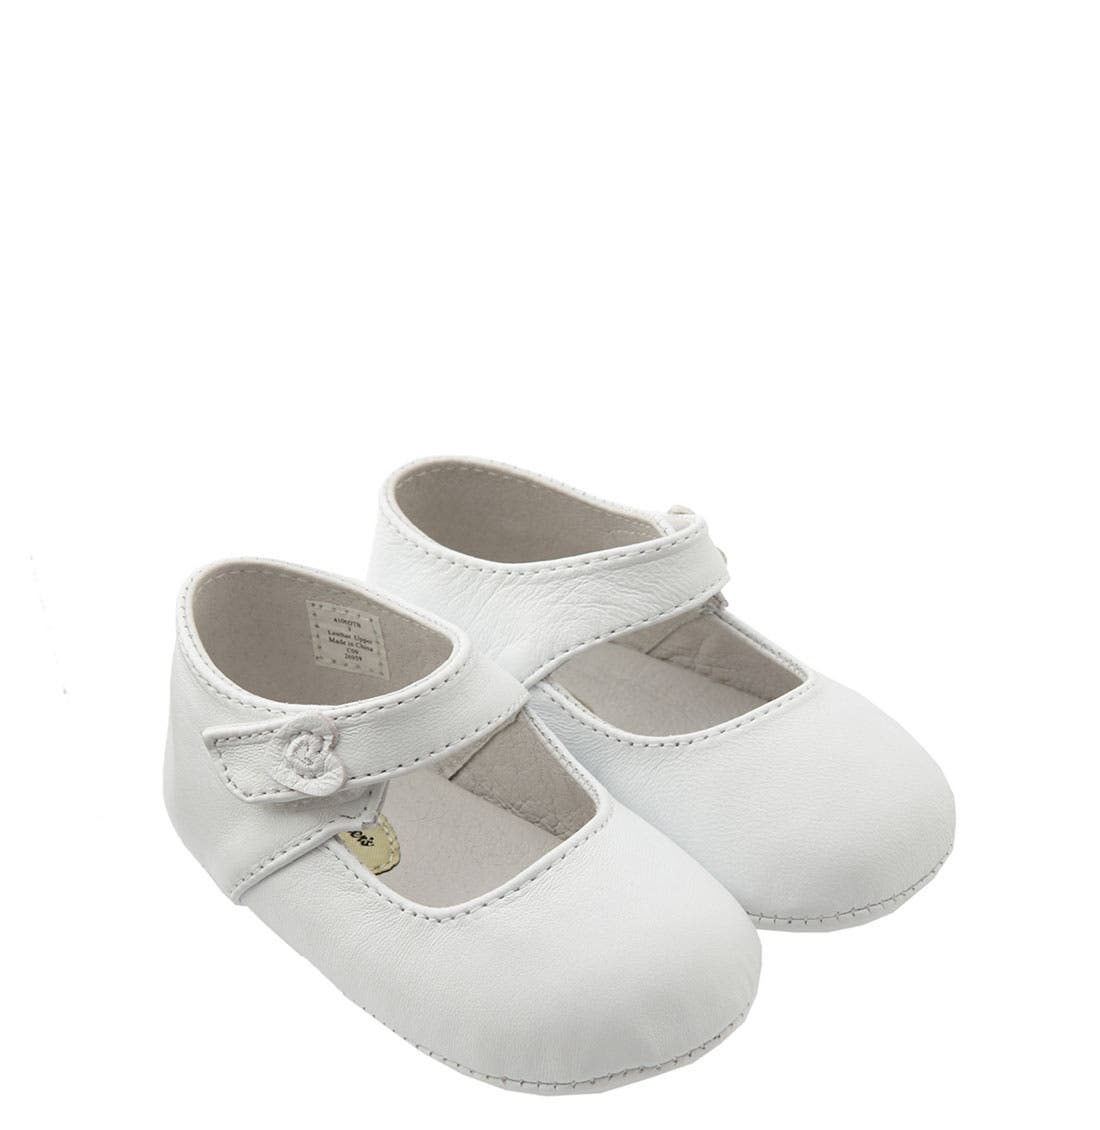 Alternate Image 1 Selected - Designer's Touch 'Hartlee' Crib Shoe (Baby)